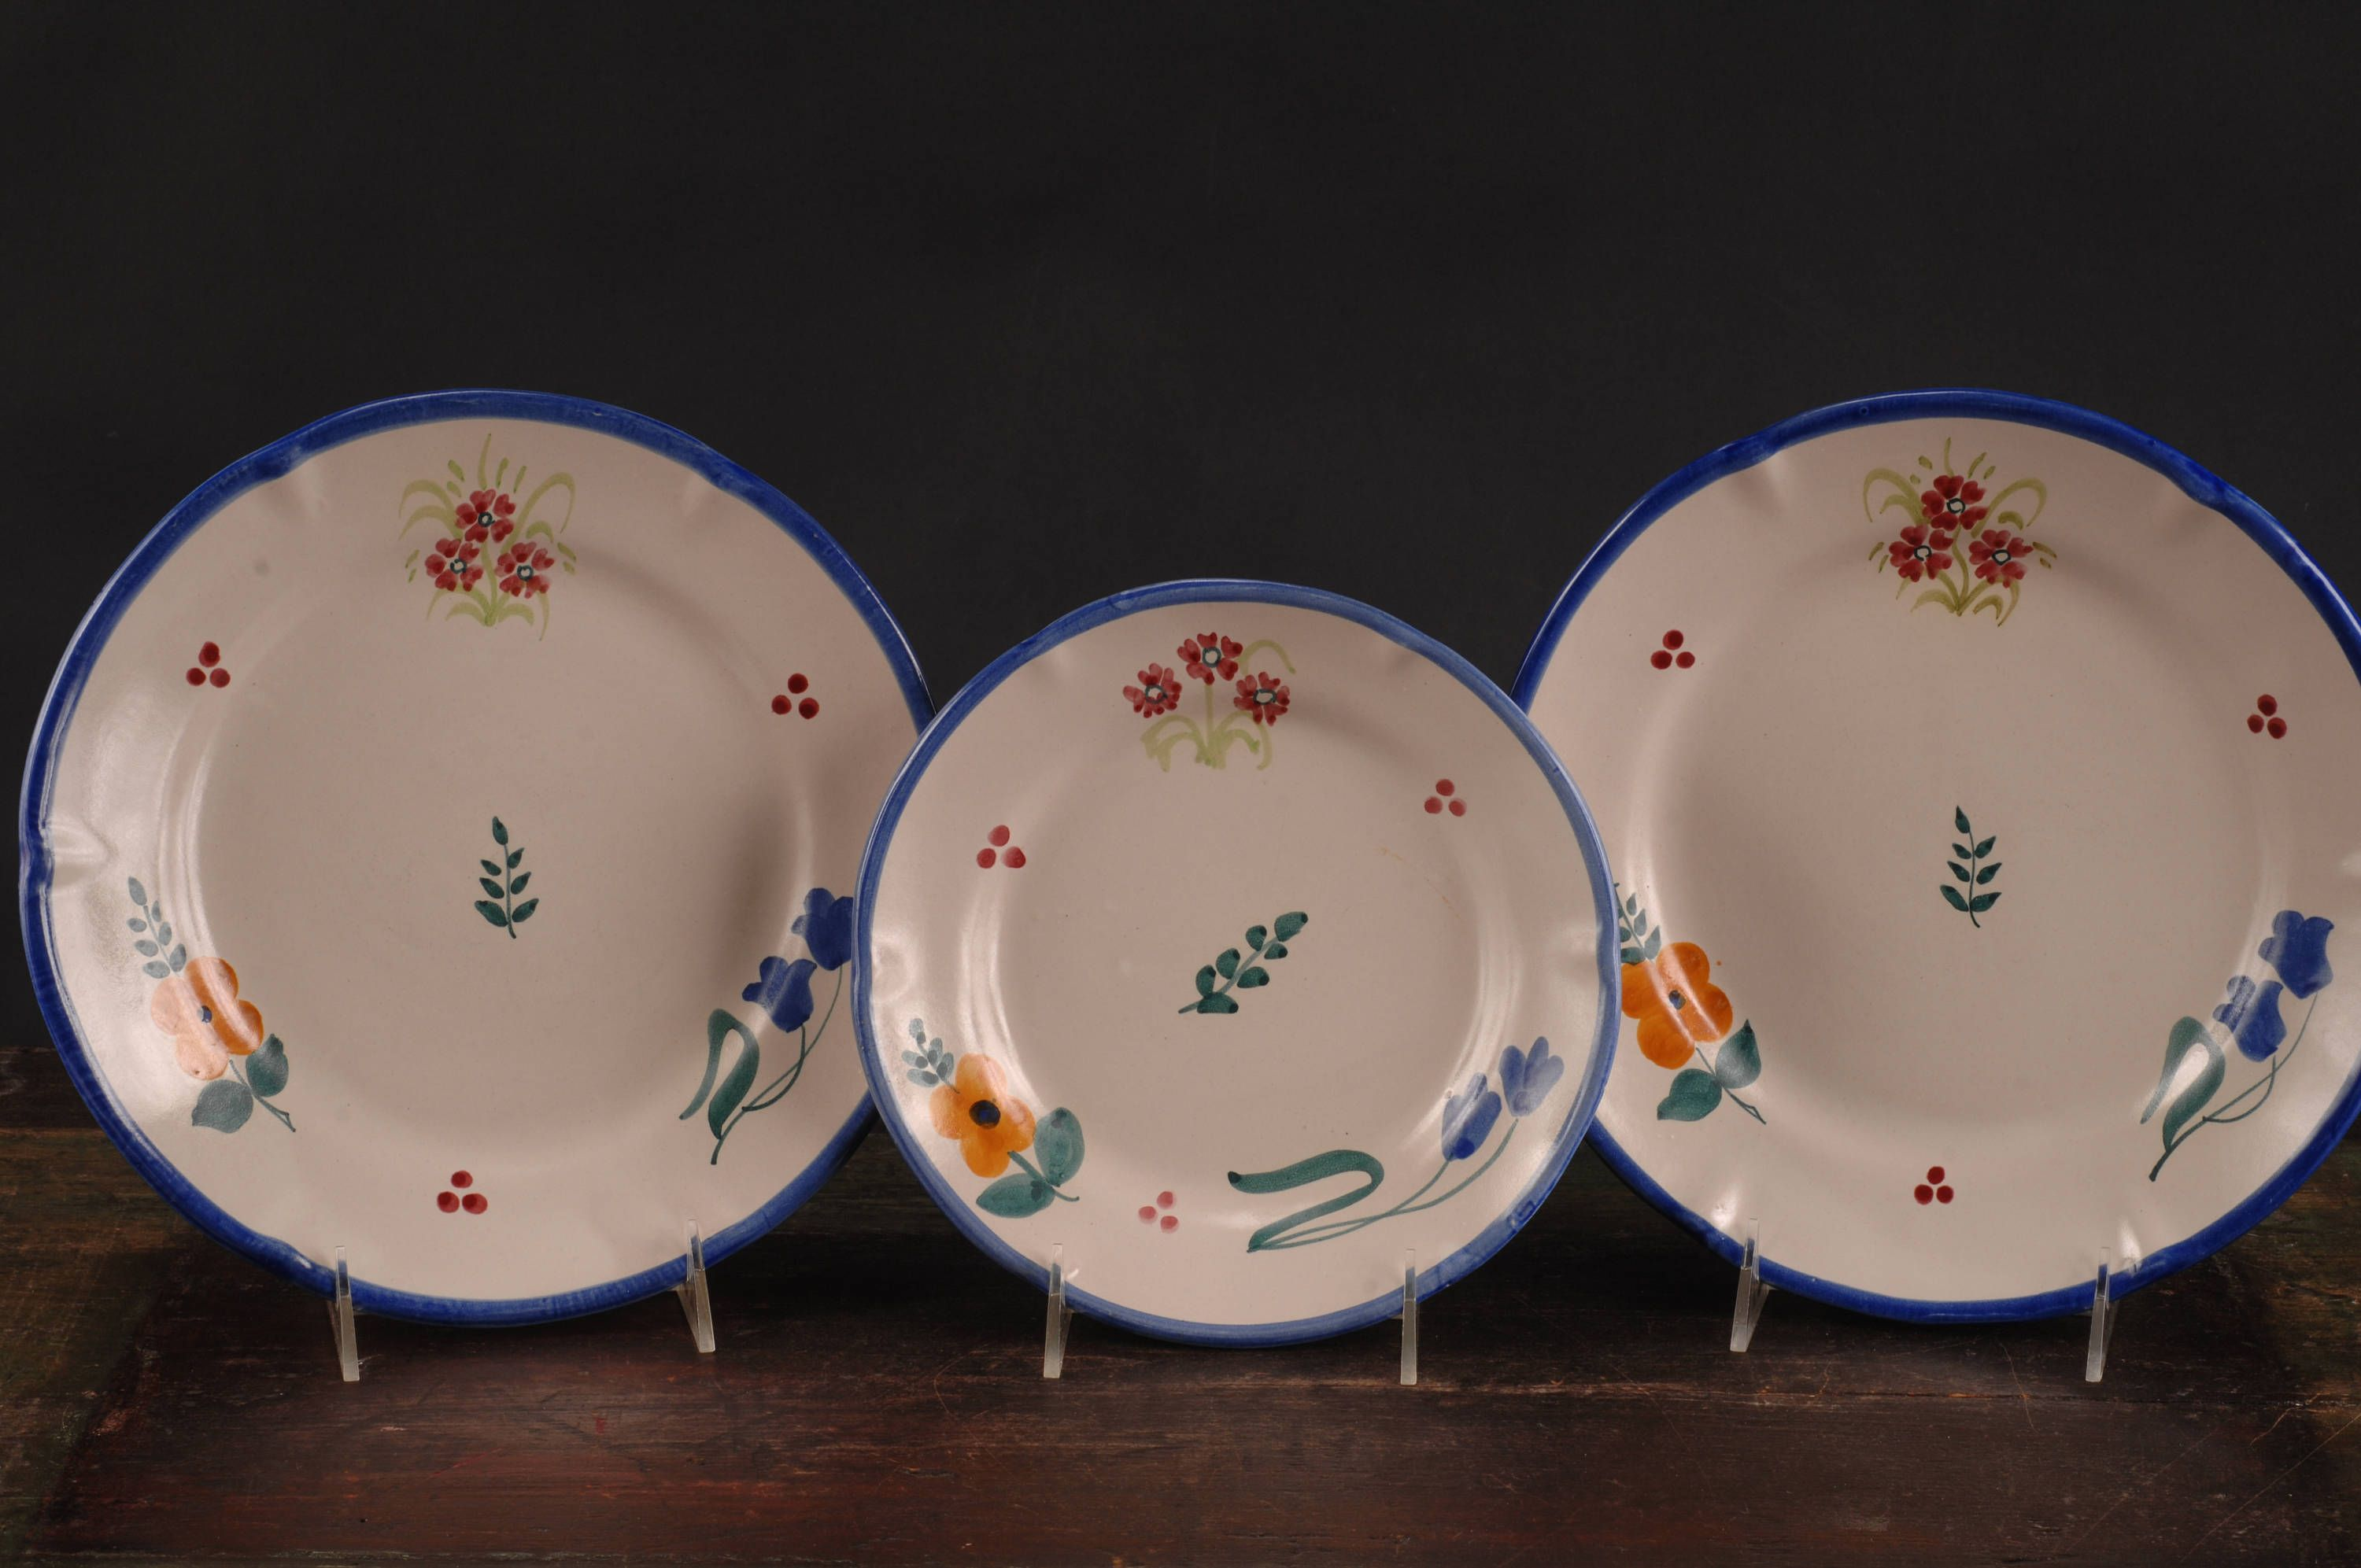 Gumps Italian Floral Dinner Plates and Salad/Dessert Plate by dinaandpartners on Etsy & Gumps Italian Floral Dinner Plates and Salad/Dessert Plate by ...